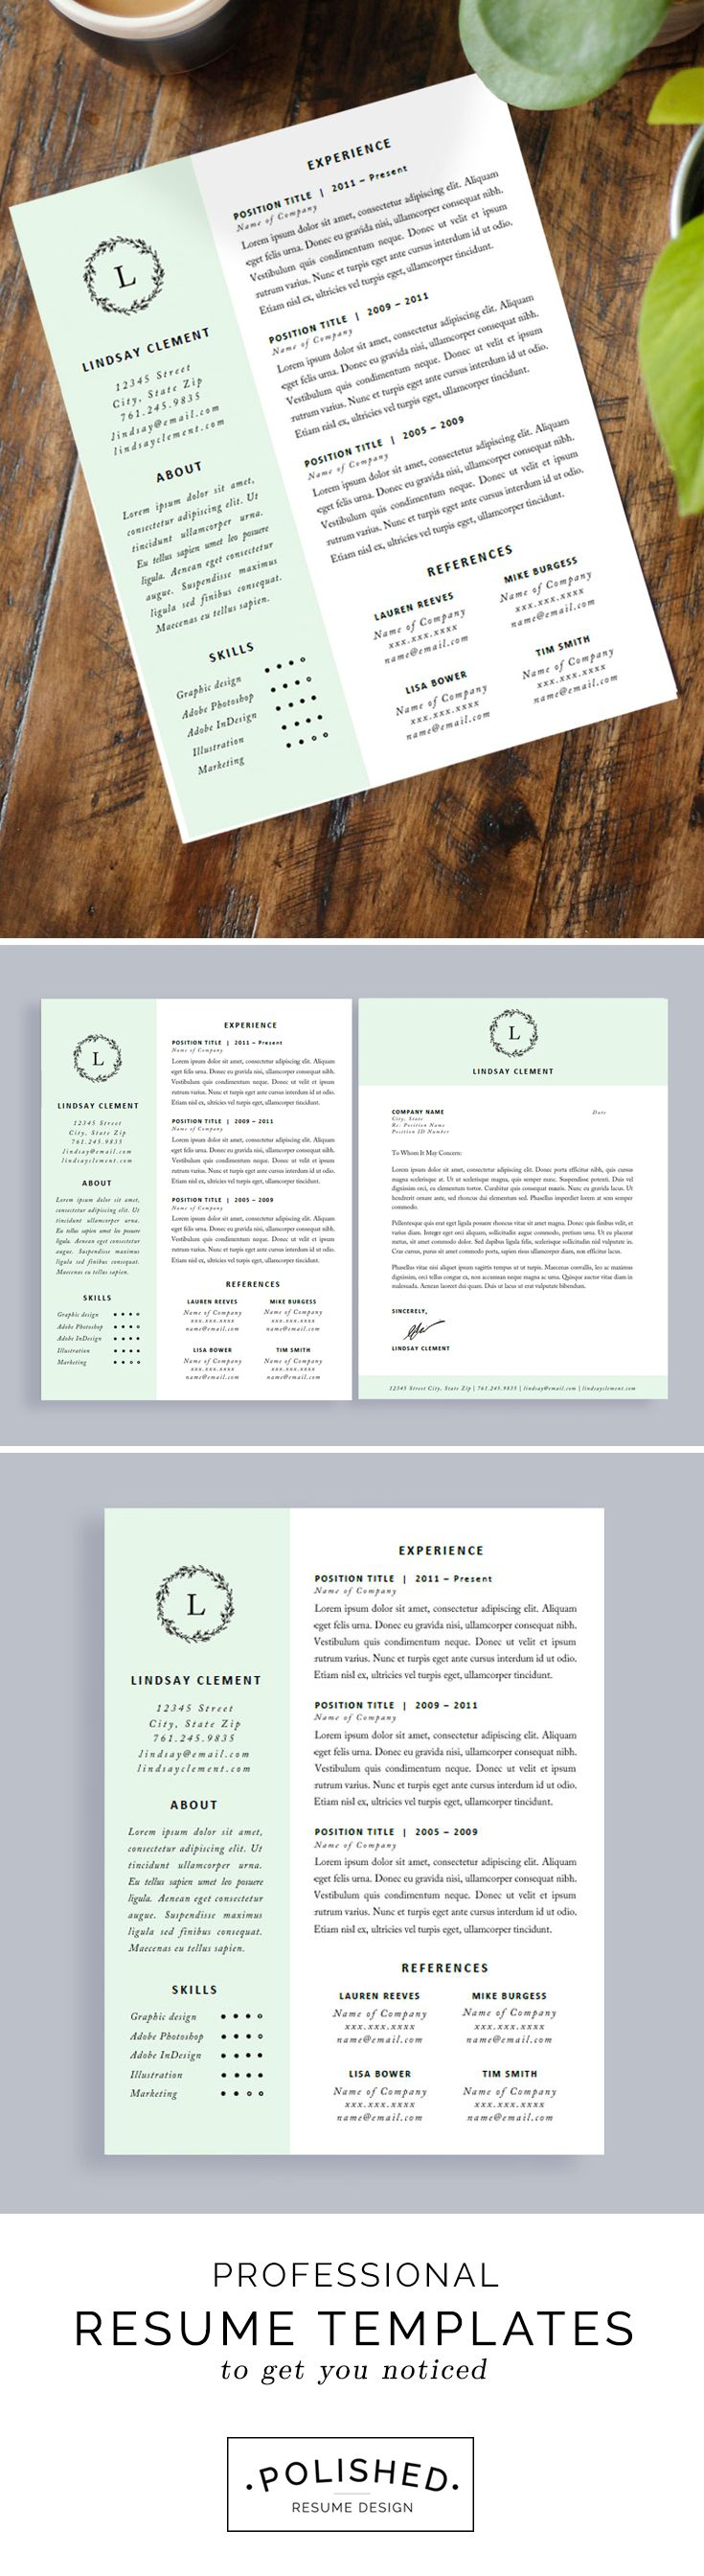 Unusual 1 Page Resume Format Free Download Small 10 Envelope Template Rectangular 15 Year Old Resume Sample 18th Invitation Templates Young 1and1 Templates Gray2 Binder Spine Template 25  Best Ideas About Professional Resume Examples On Pinterest ..